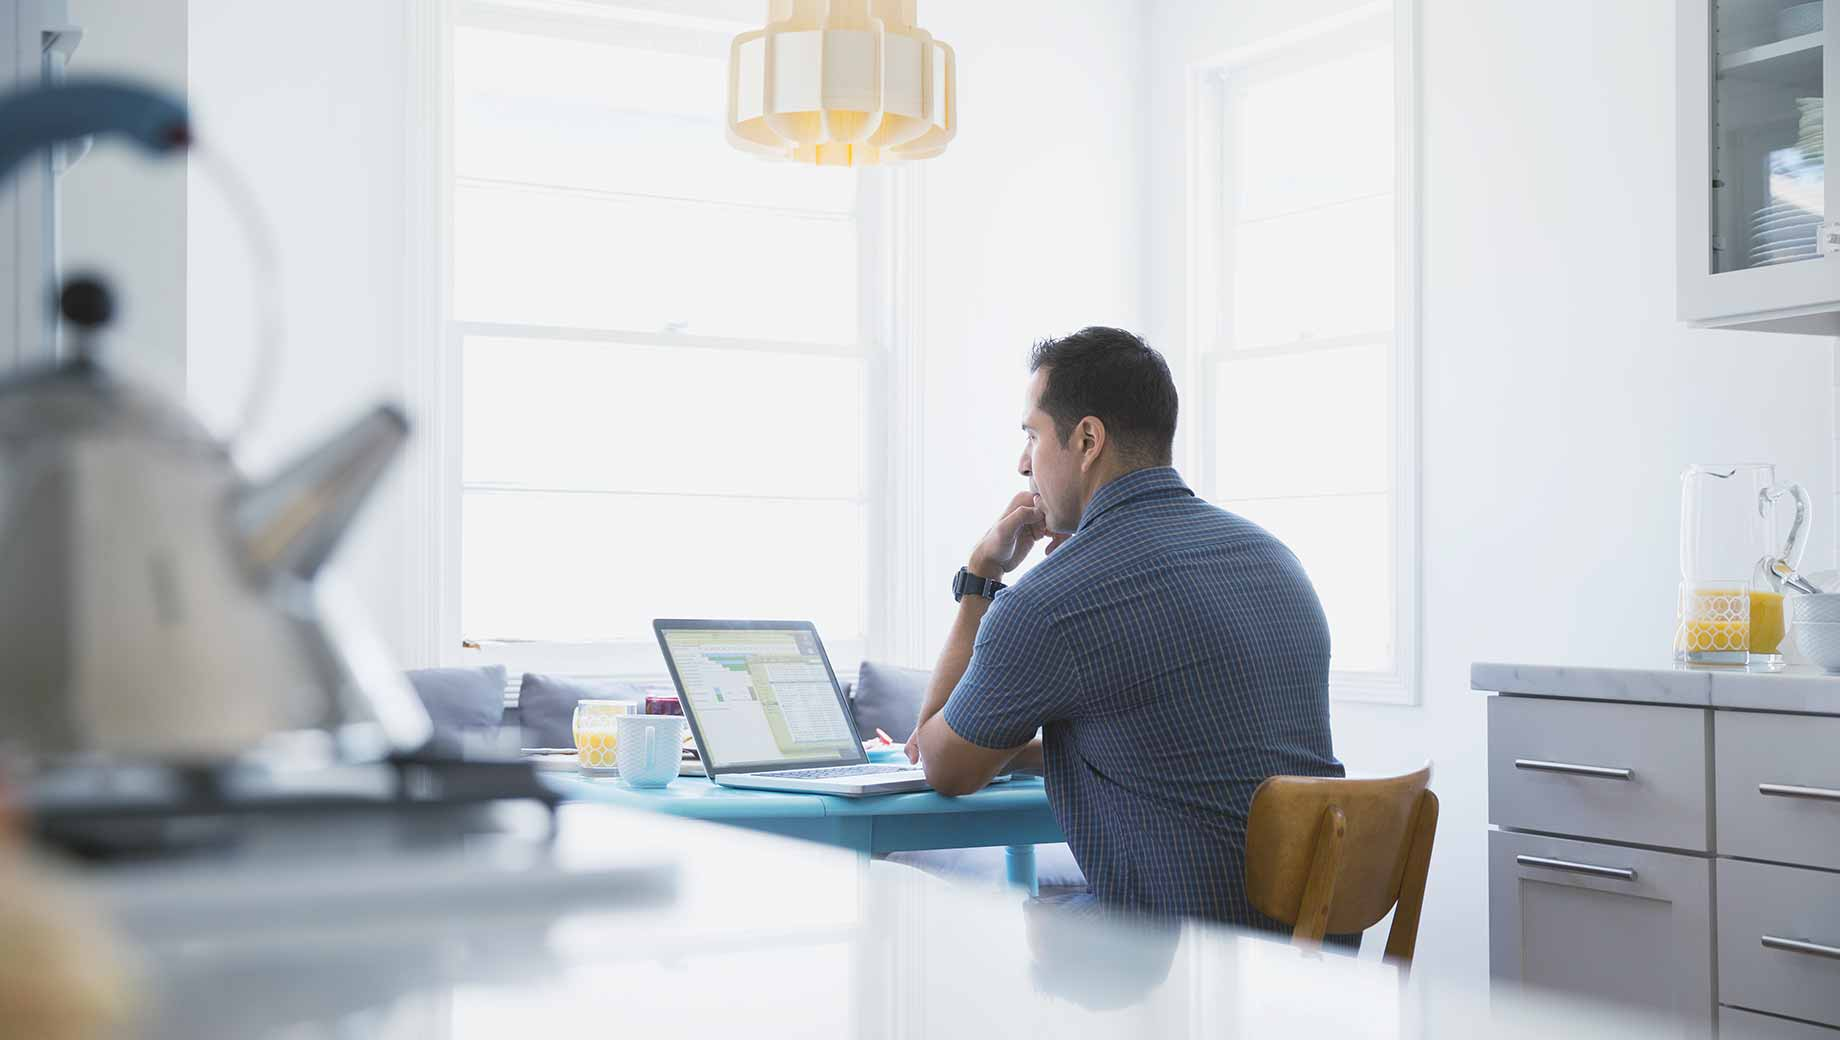 Remote Hiring: The Benefits, Challenges Faced, and Hiring Strategy